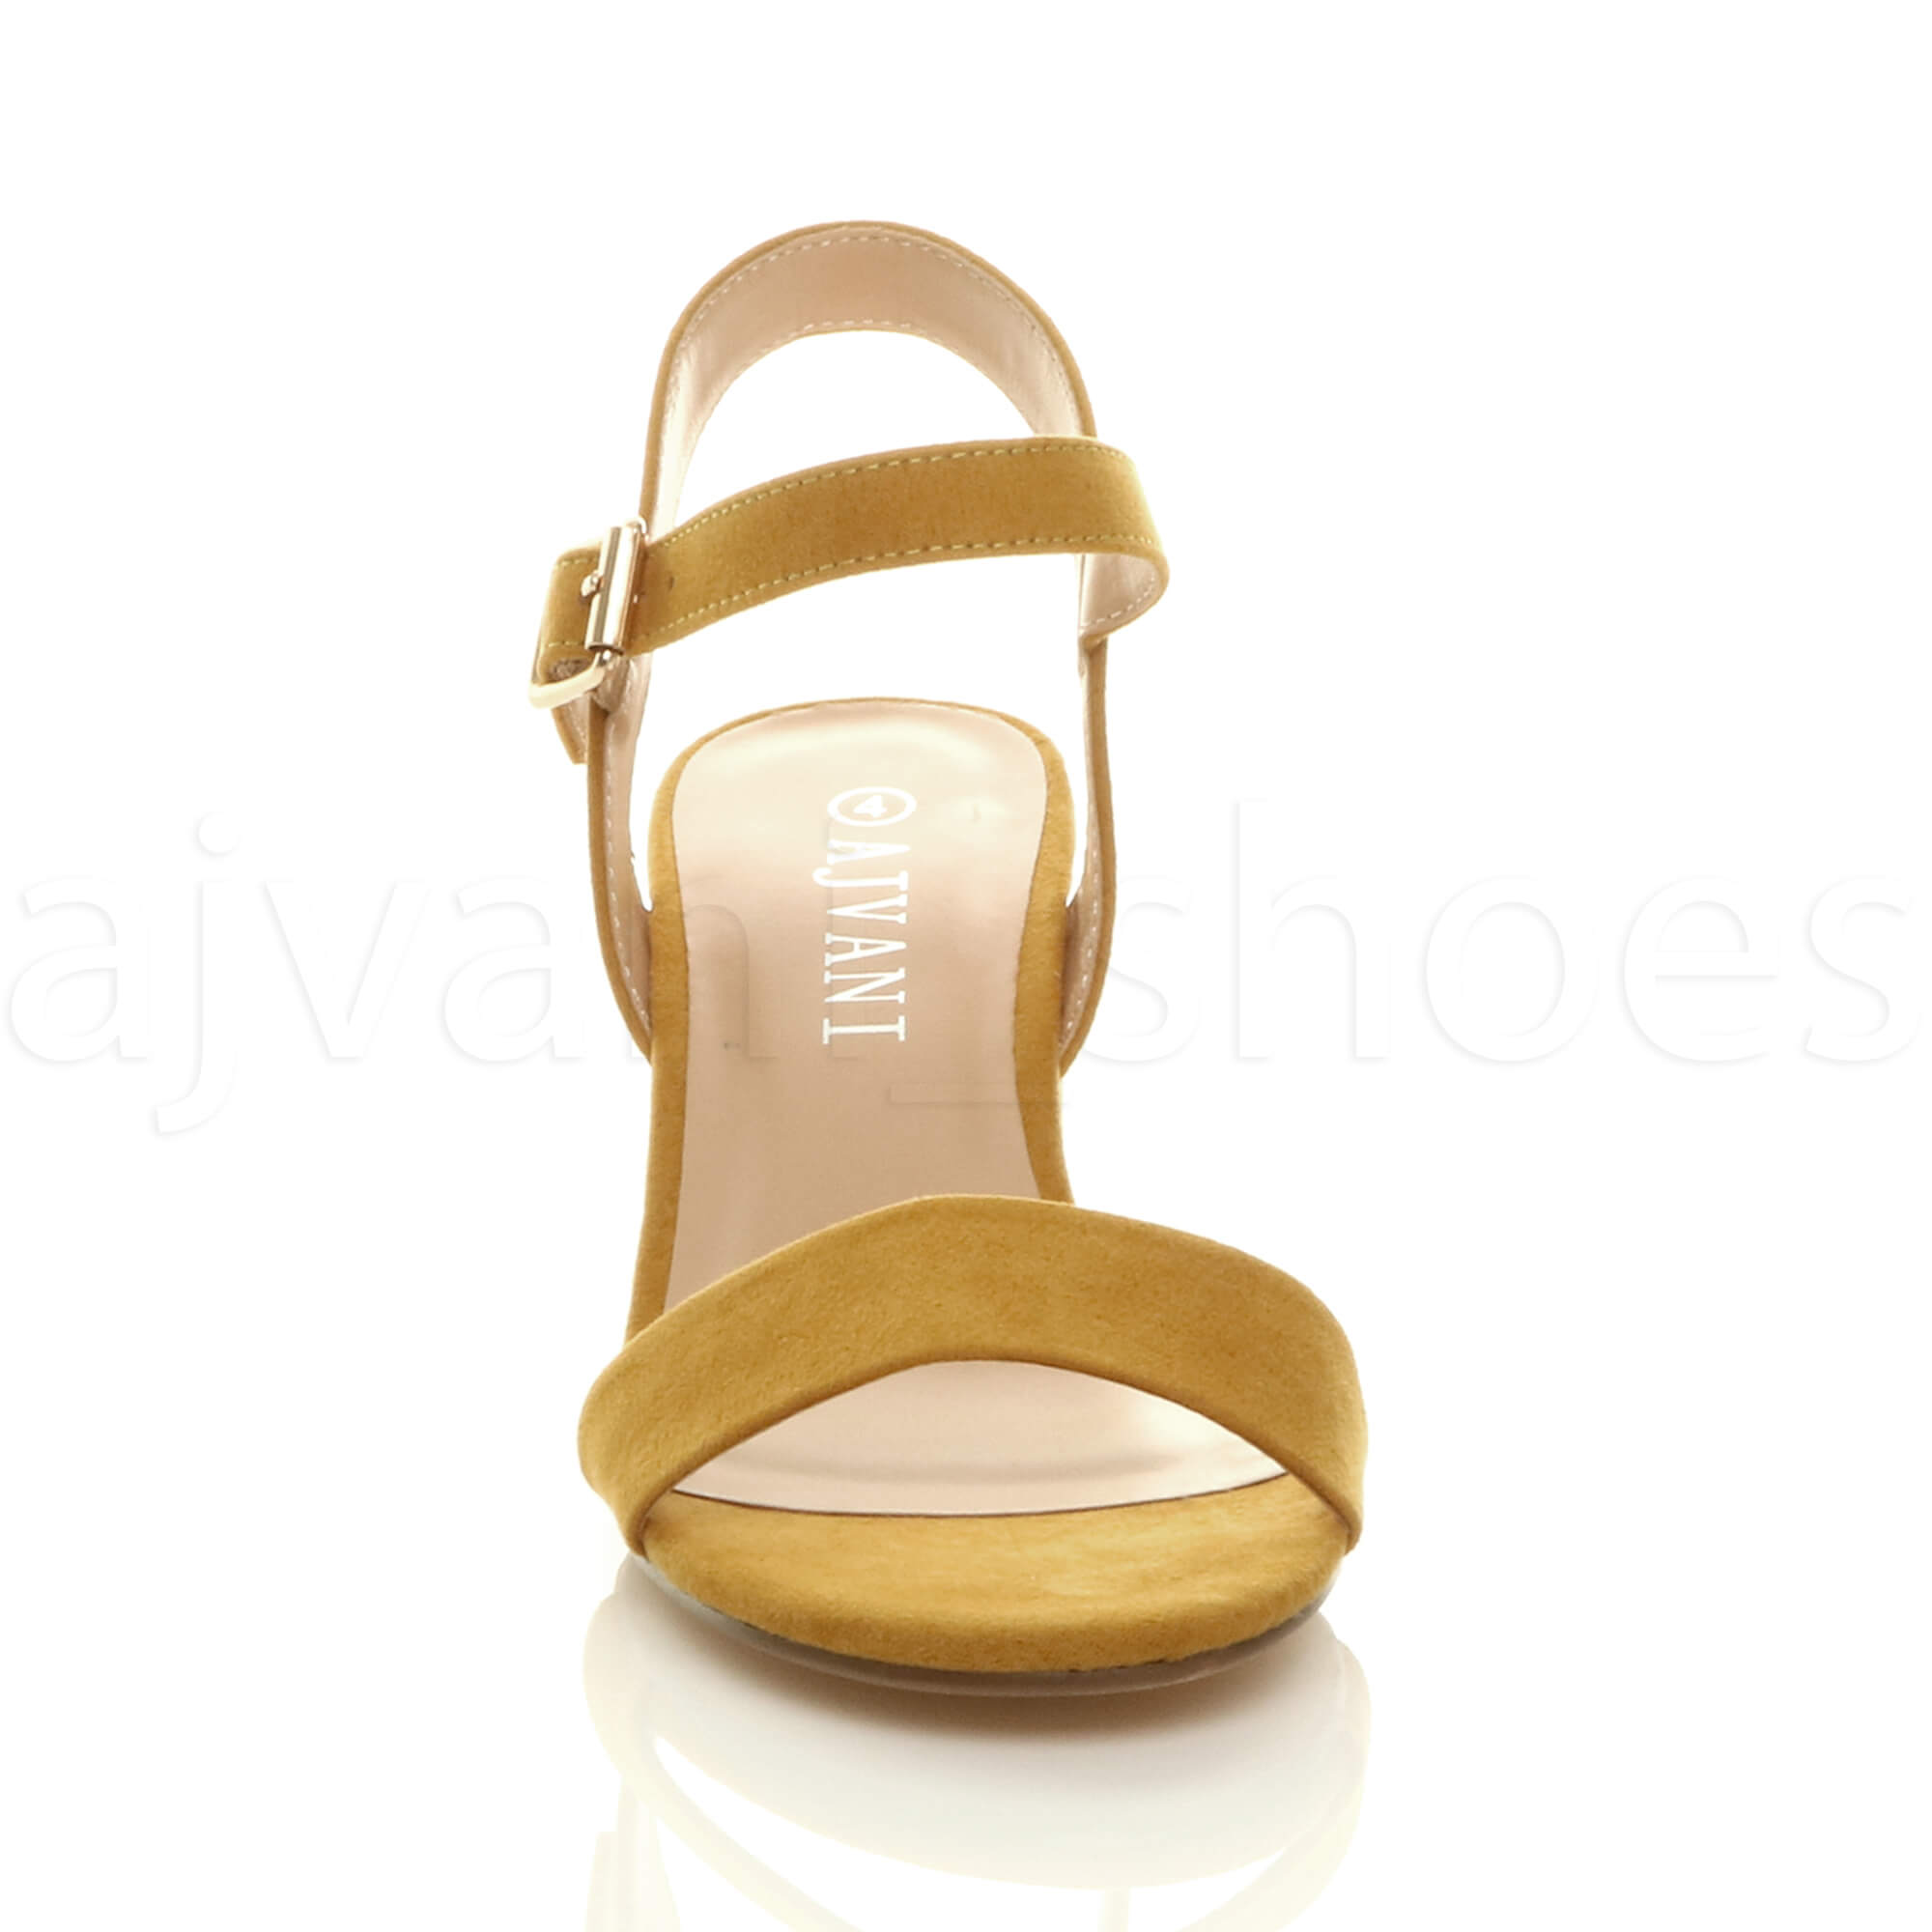 WOMENS-LADIES-MID-LOW-BLOCK-HEEL-PEEP-TOE-ANKLE-STRAP-STRAPPY-PARTY-SANDALS-SIZE thumbnail 79